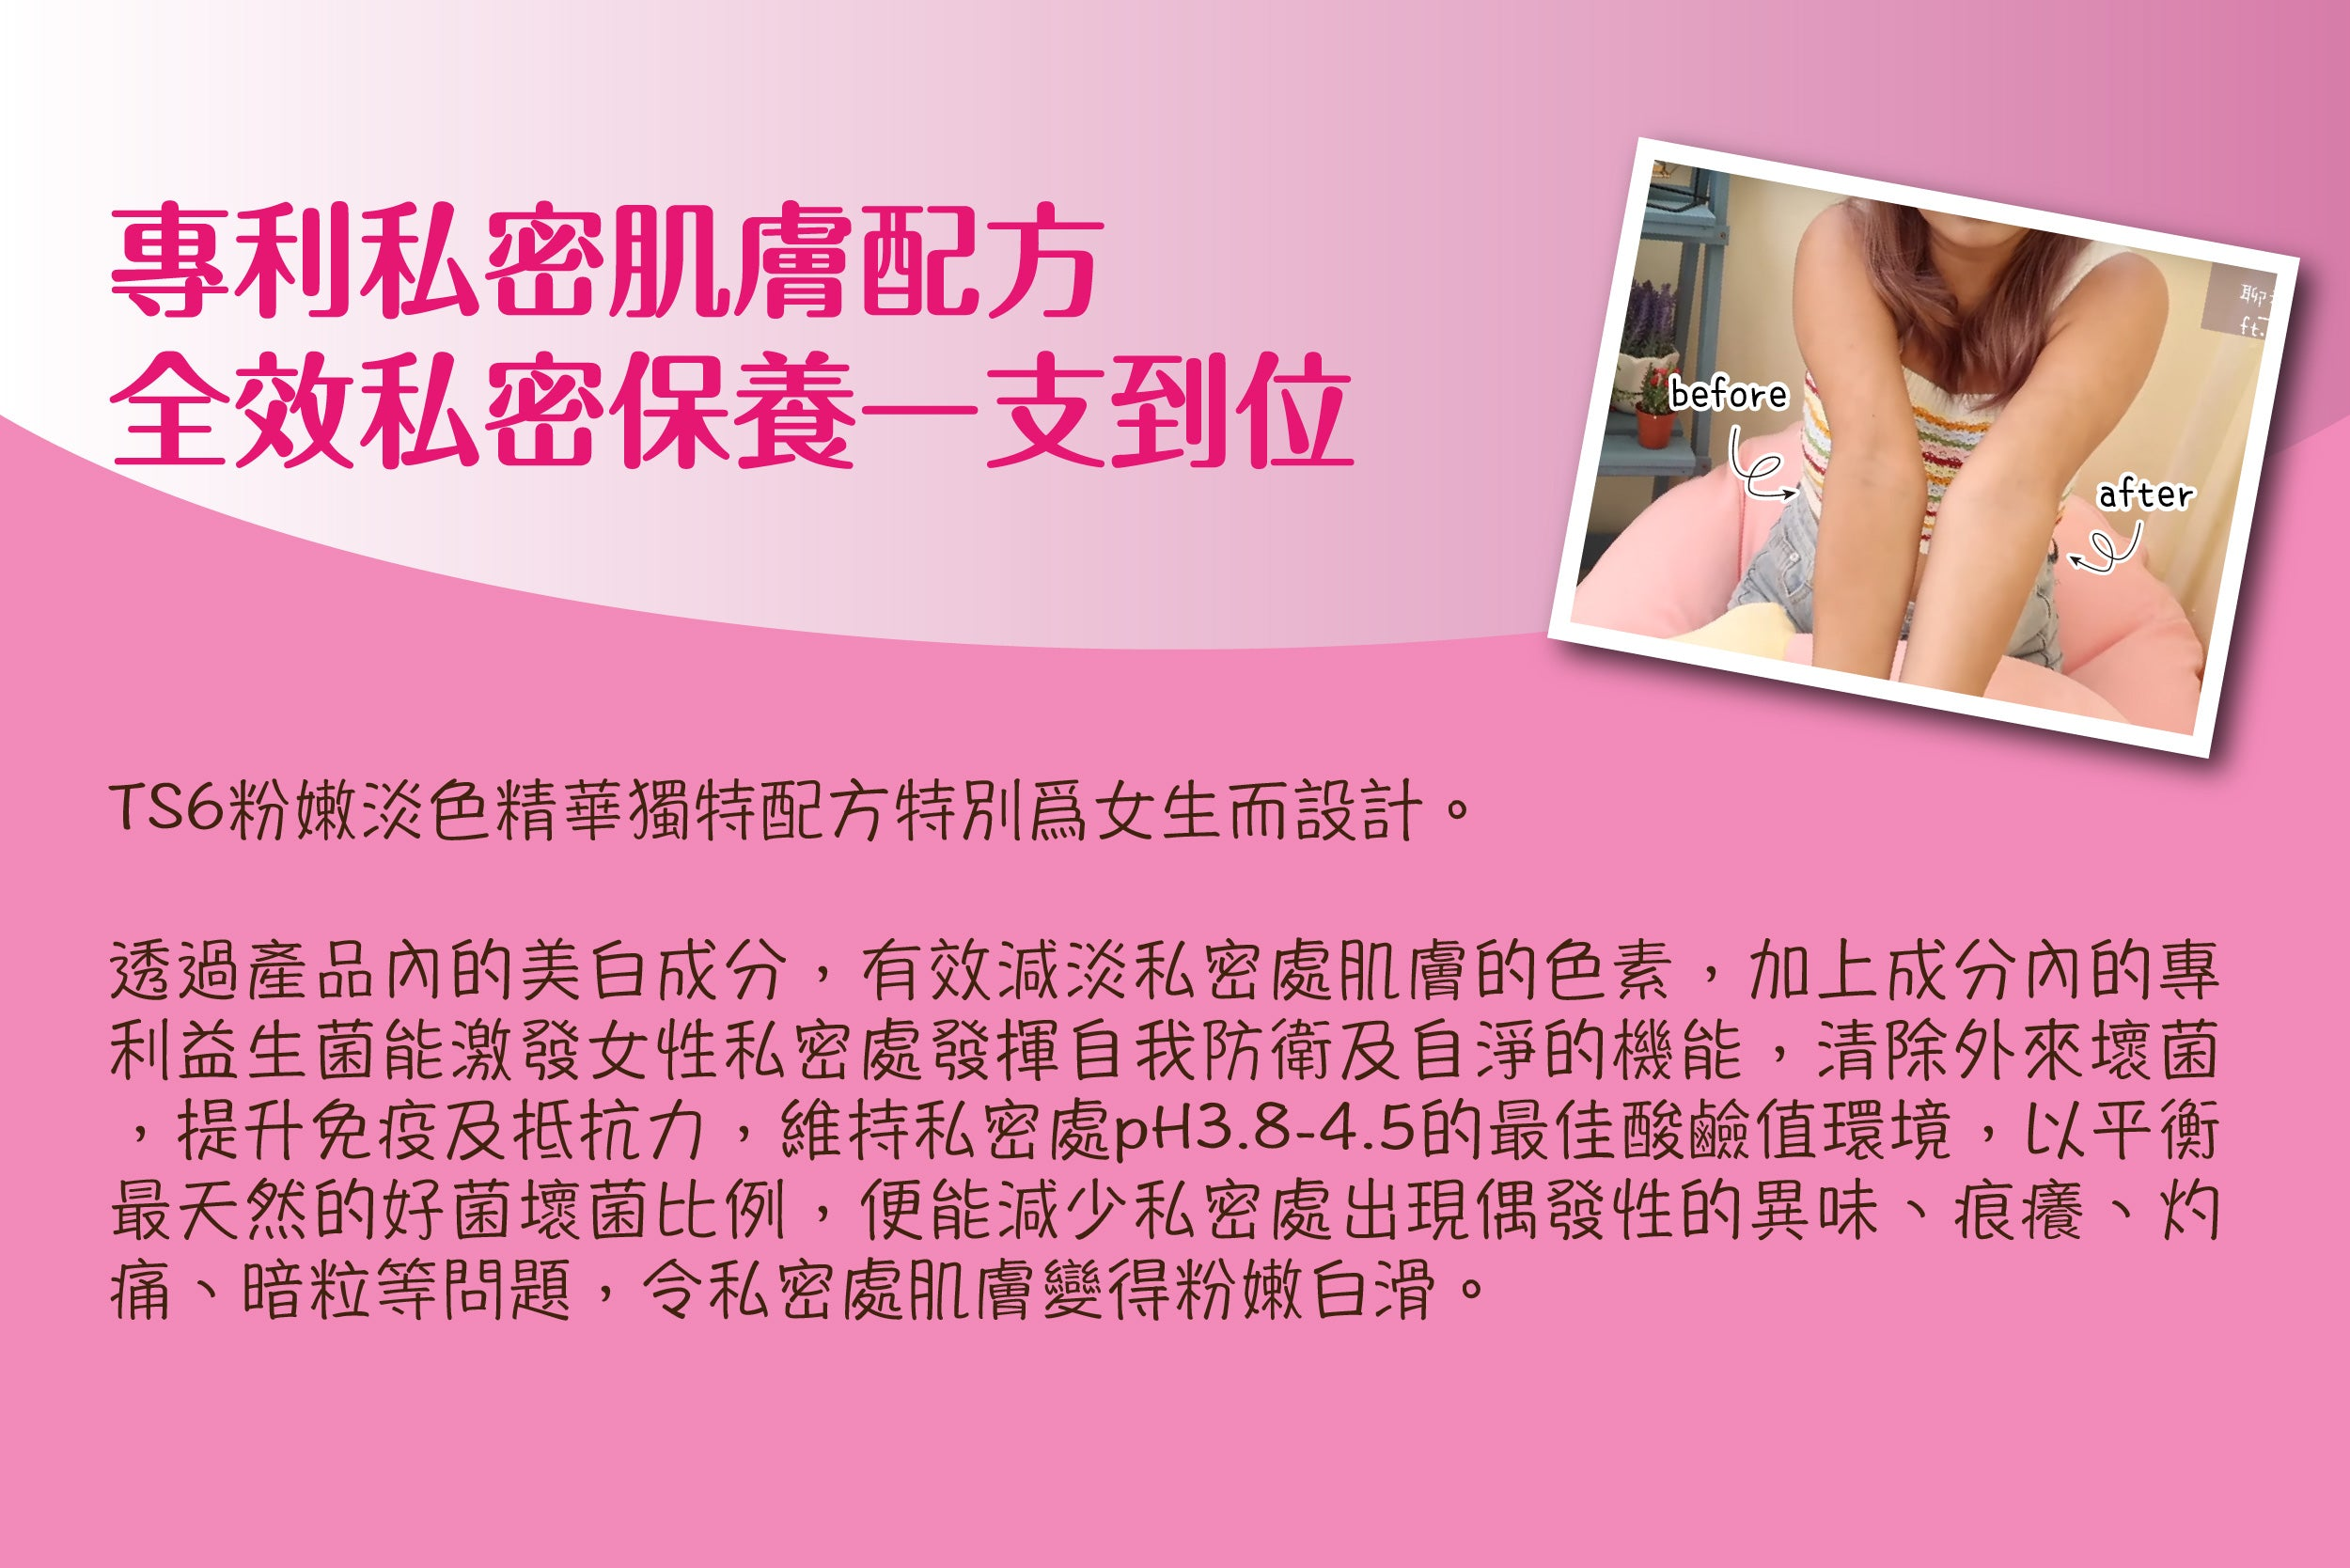 Jetour Mall TS6 私密粉嫩淡色精華 TS6 Feminine Intimate Serum